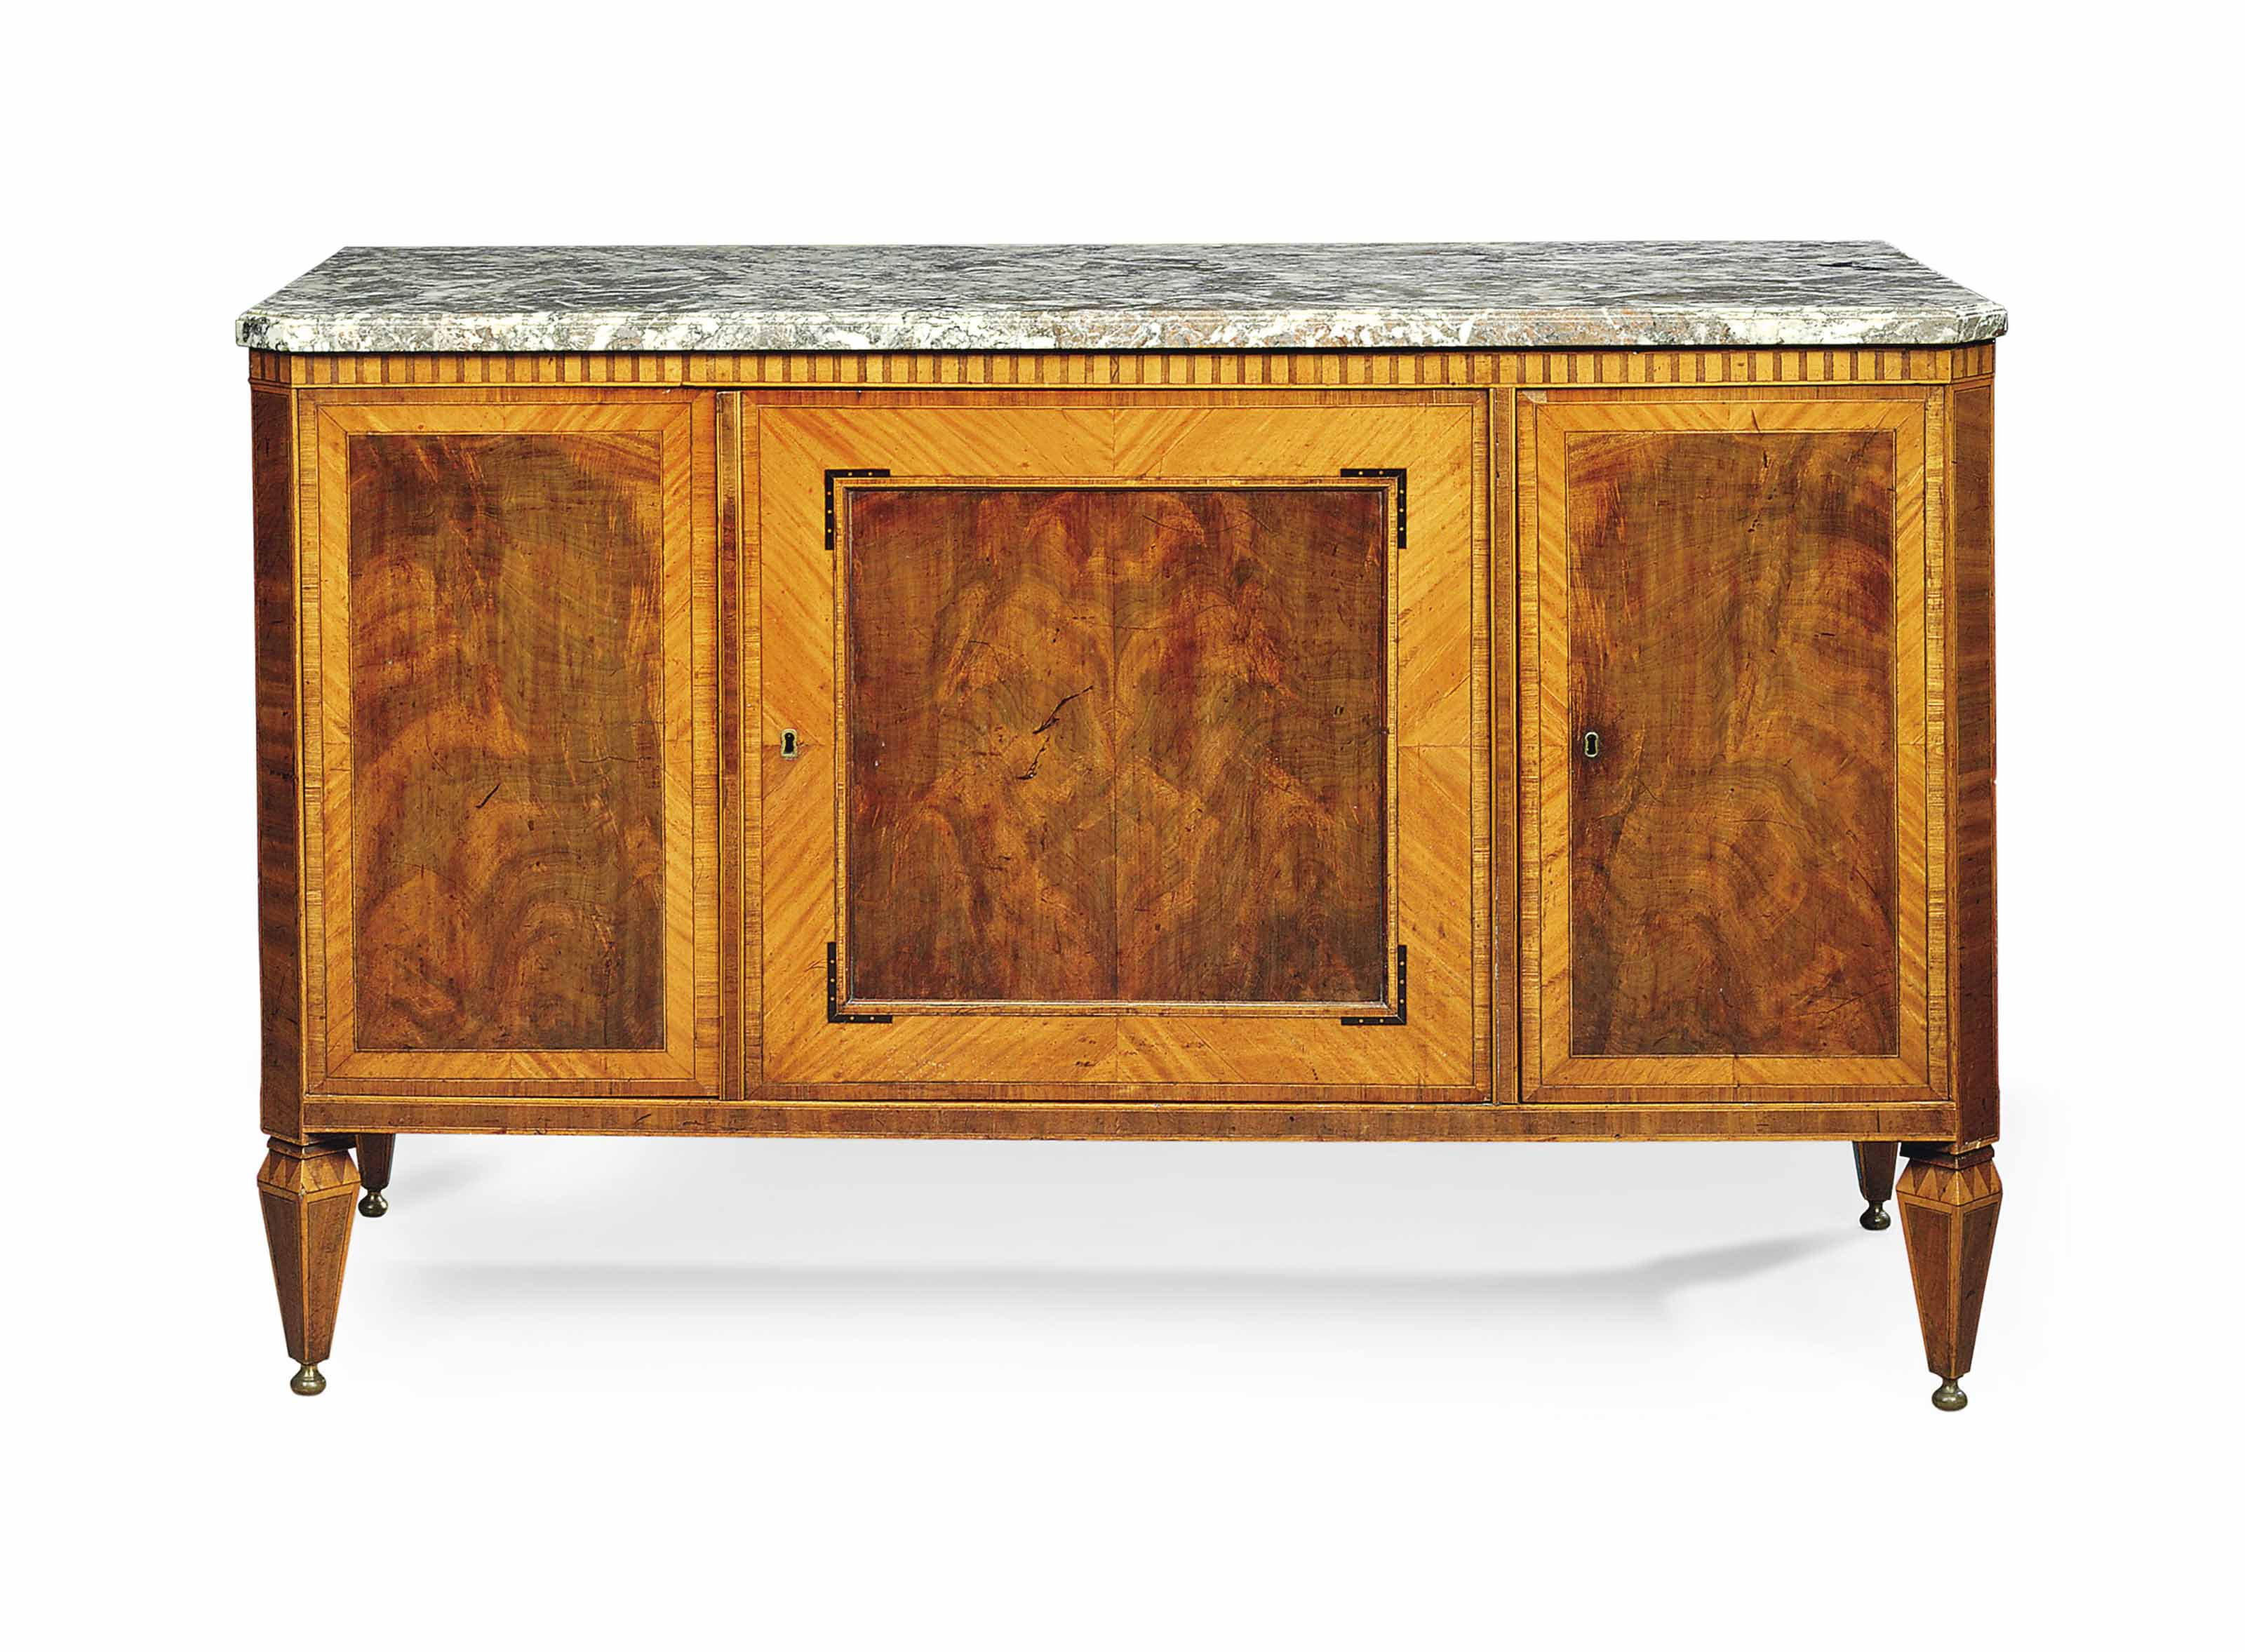 A DUTCH MAHOGANY, SATINWOOD AND KINGWOOD CROSS-BANDED SIDE CABINET